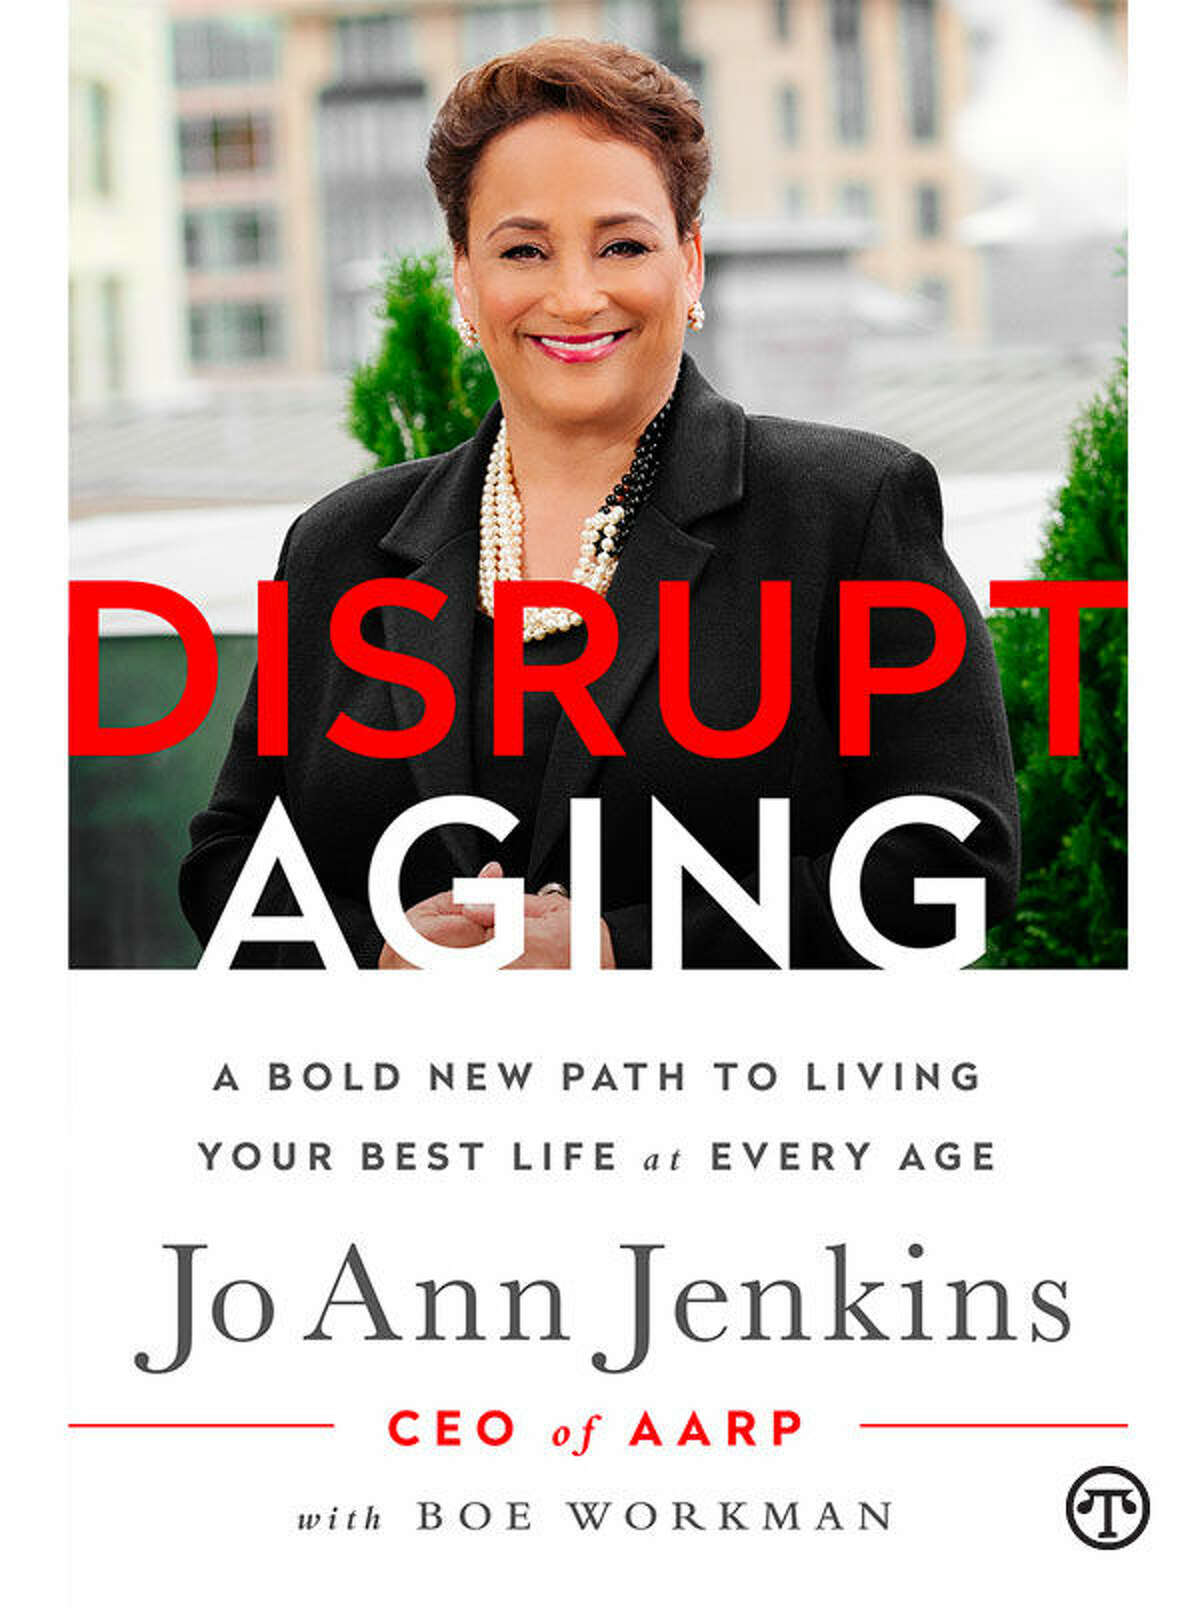 A new book by Jo Ann Jenkins explores the realities of aging in modern times. (NAPS)